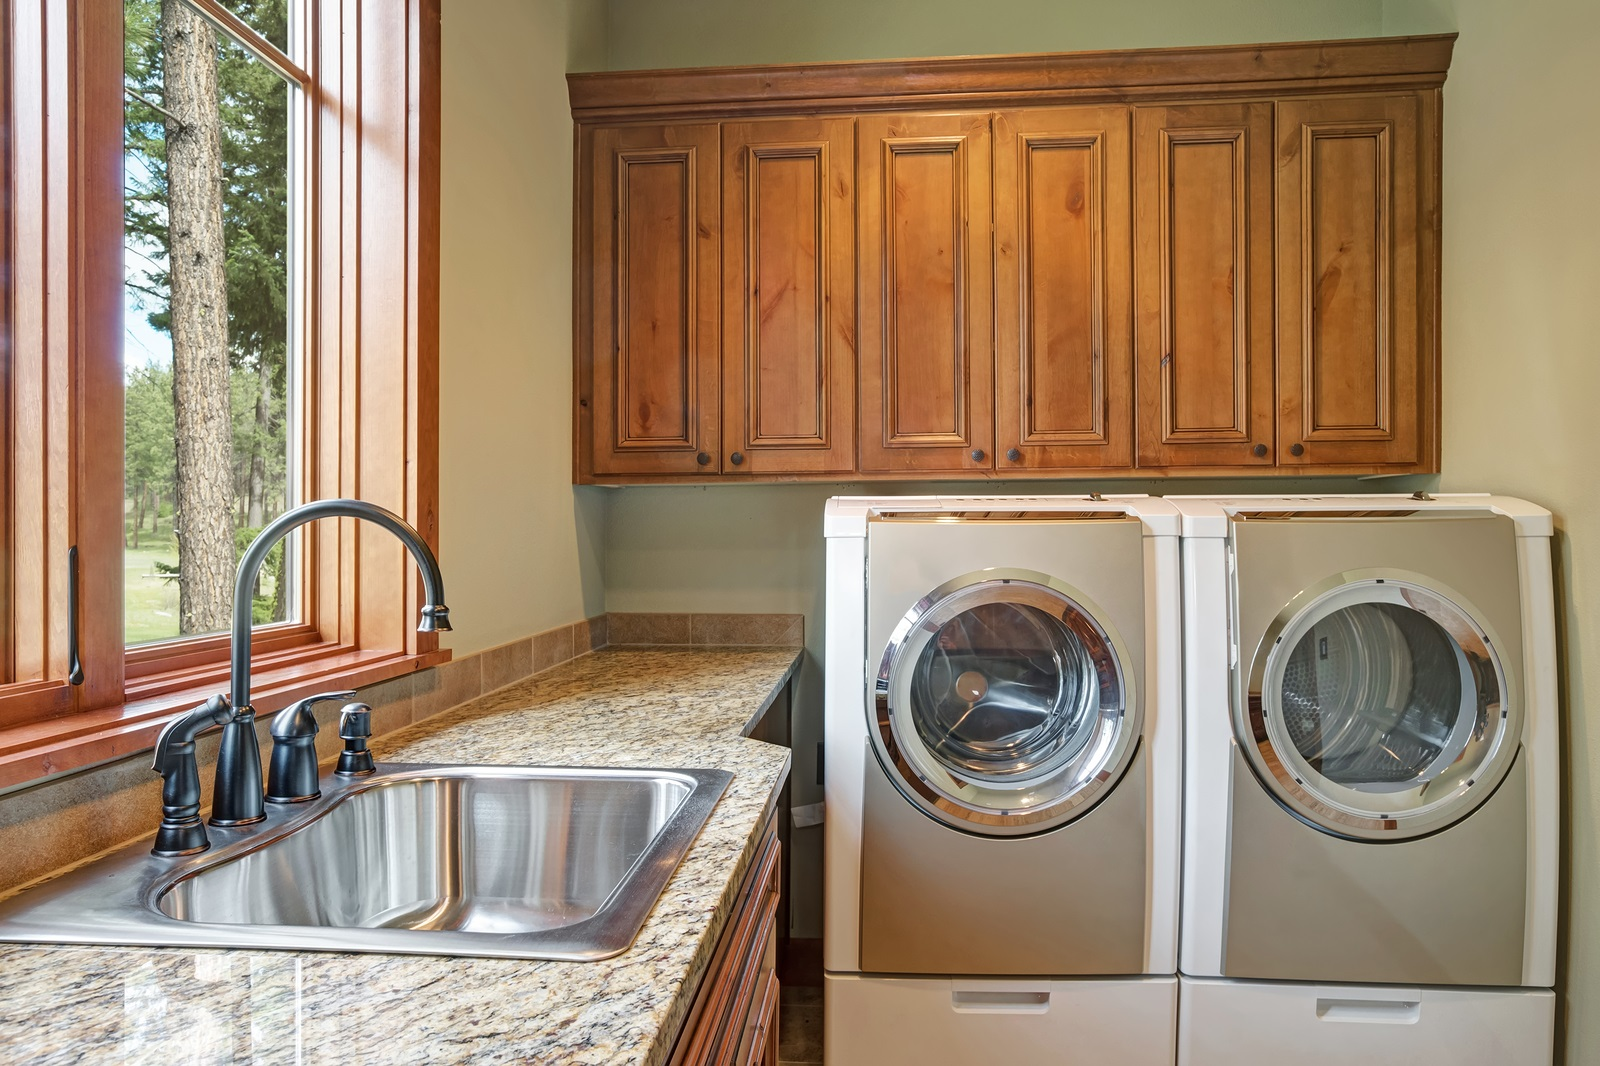 THE DO'S AND DON'TS OF REPAIRING YOUR APPLIANCE AT HOME